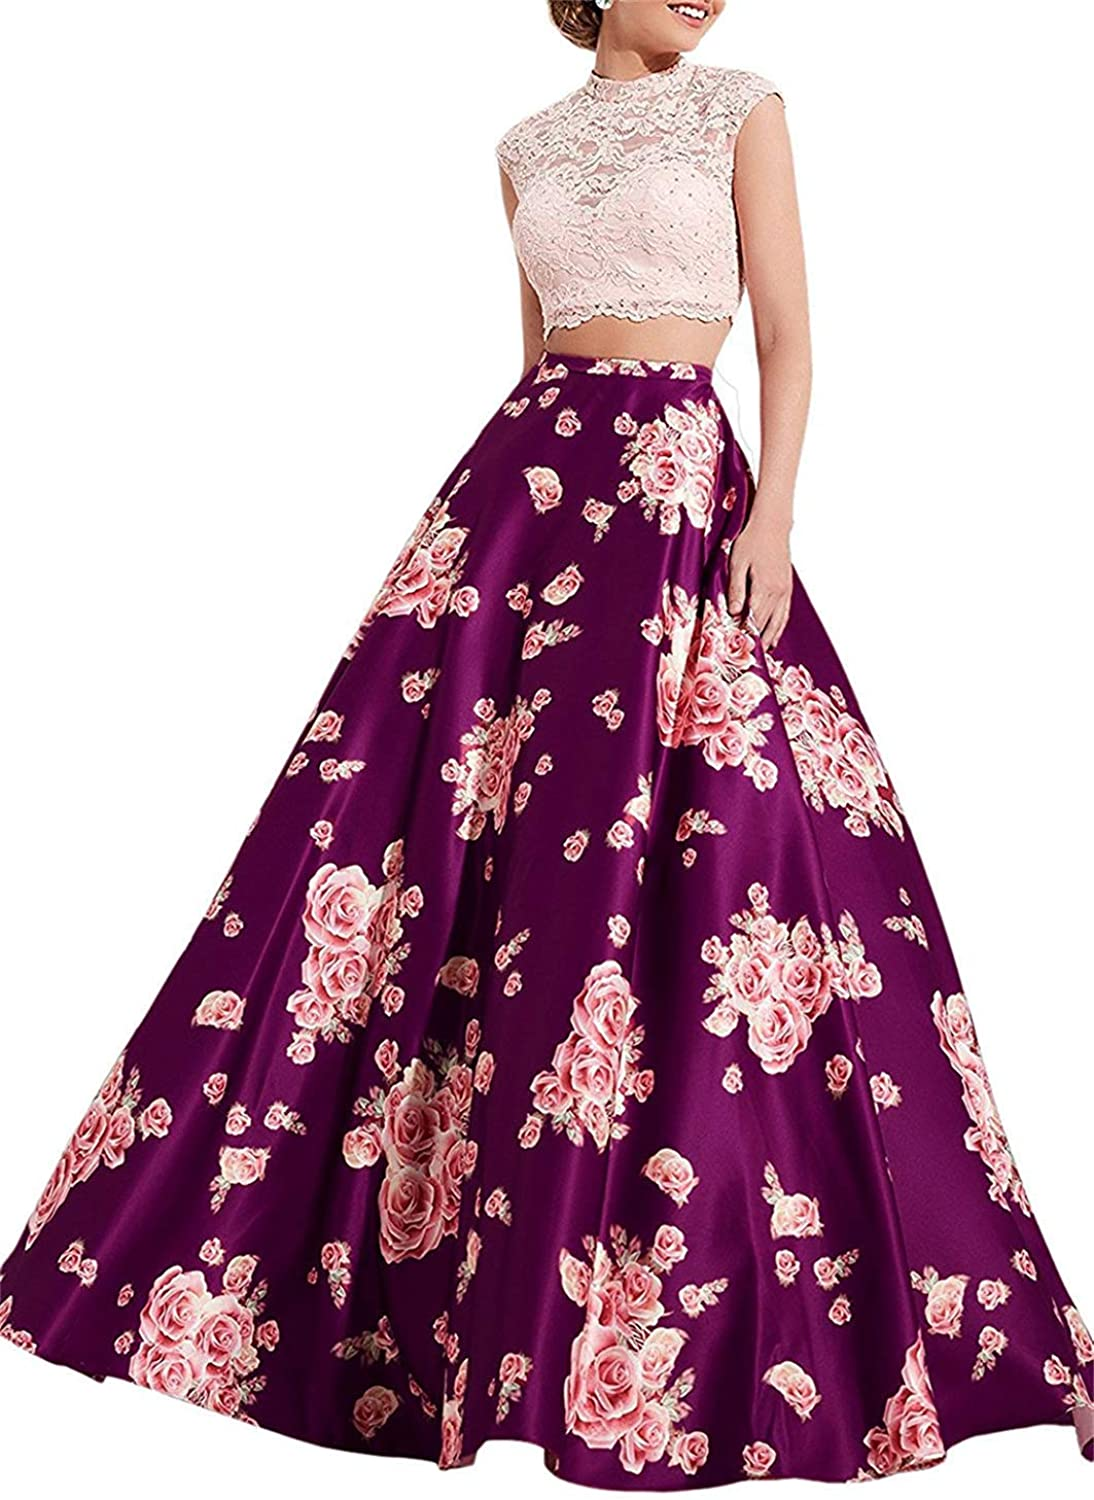 LL Bridal Women's 2 Piece Floral Prom Dresses Long Satin High Neckline Lace Evening Party Formal Ball Gowns M008